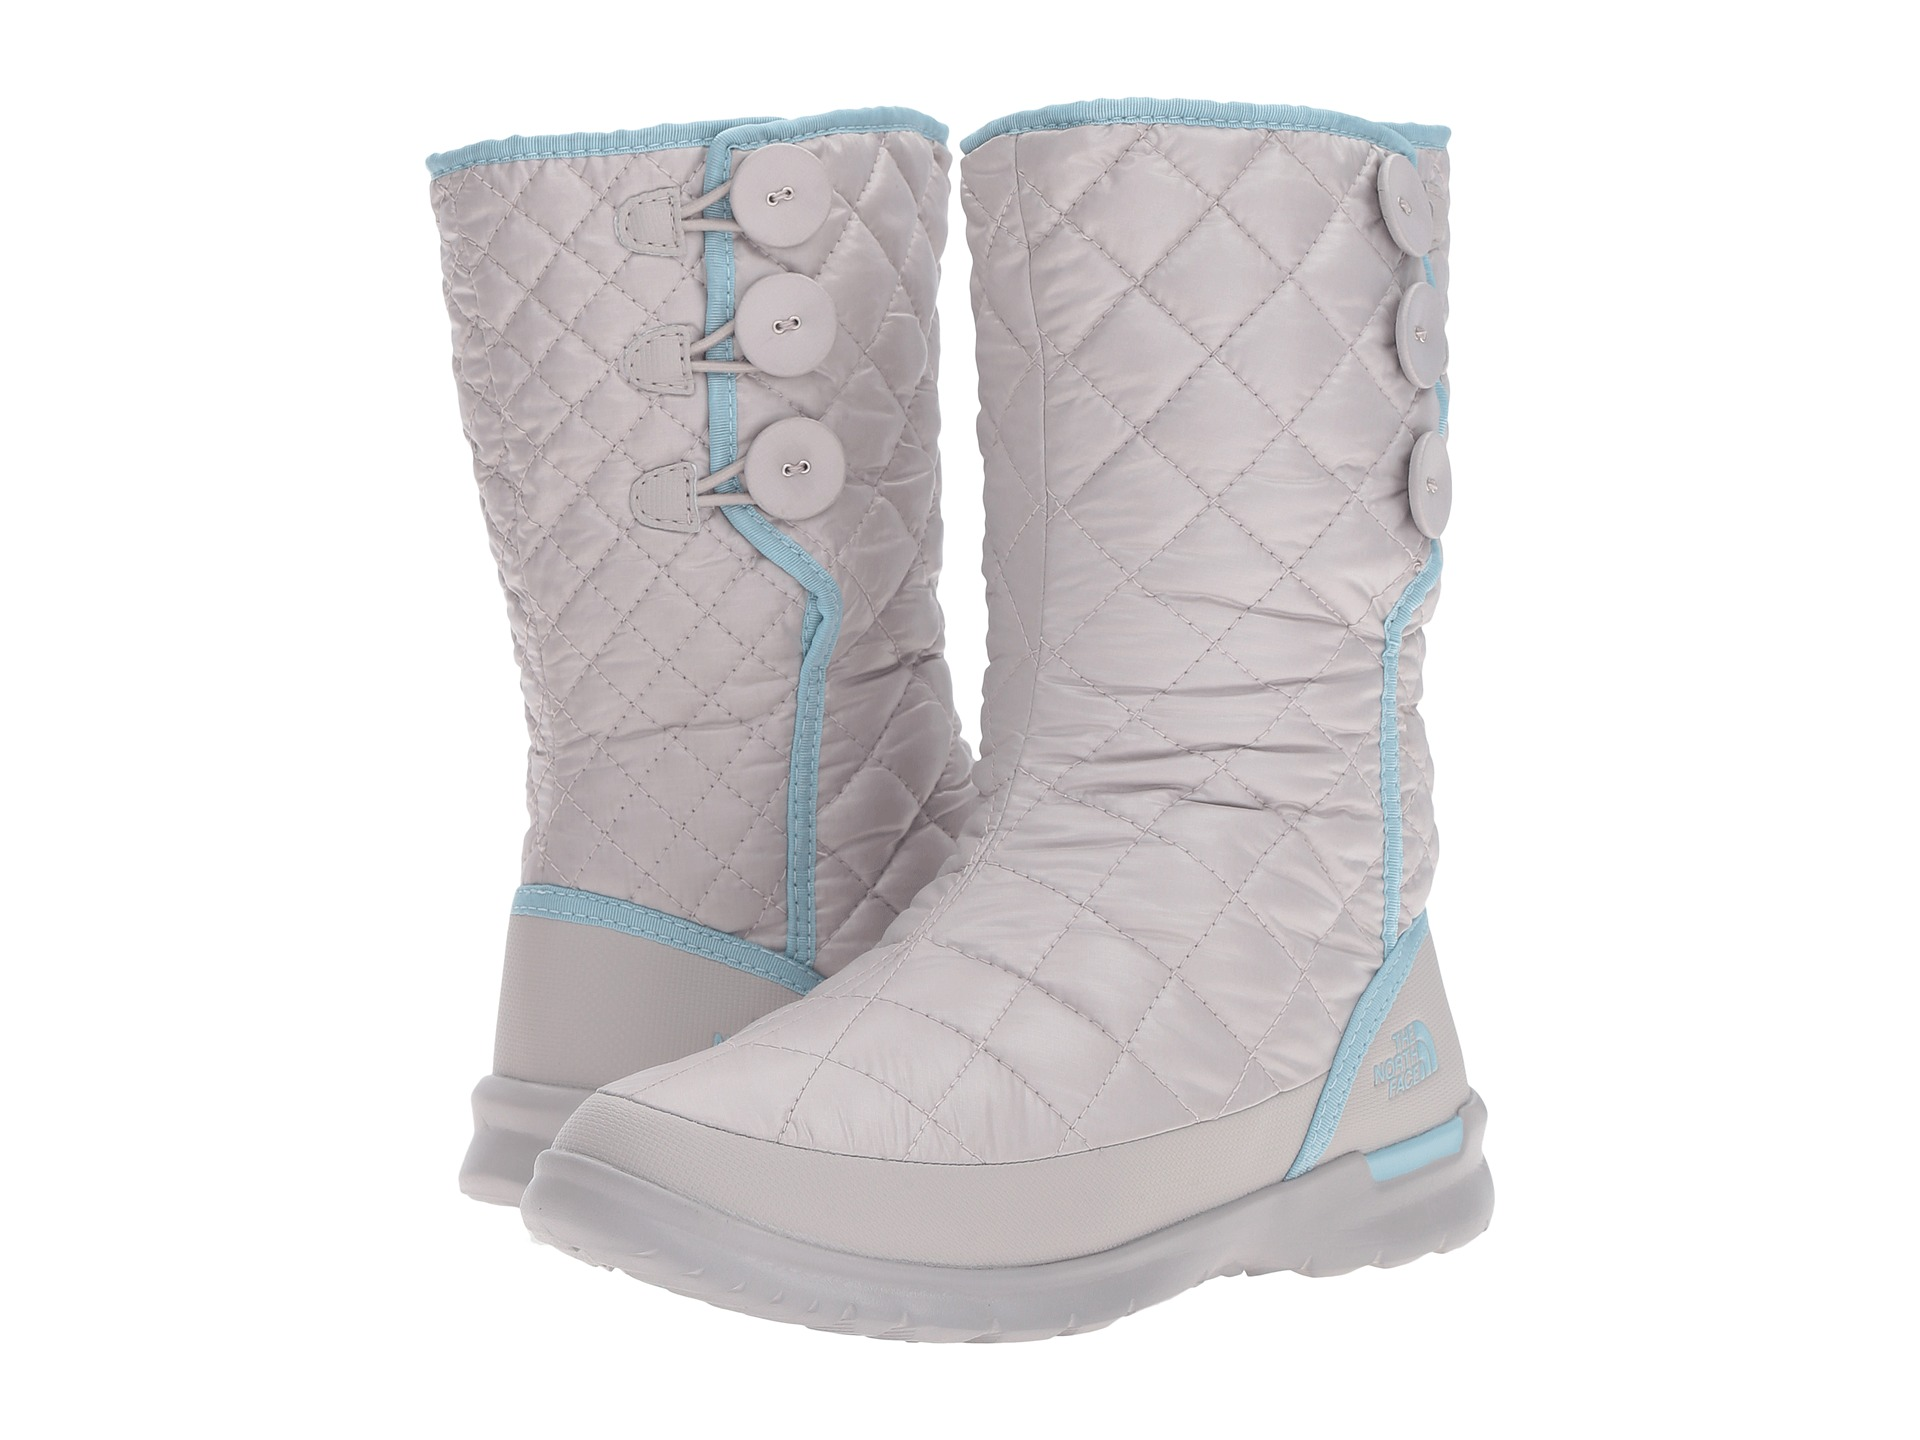 American genuine purchasing Thermo Ball, the North Face lady's waterproof and skid-proof cotton boots and snowshoes